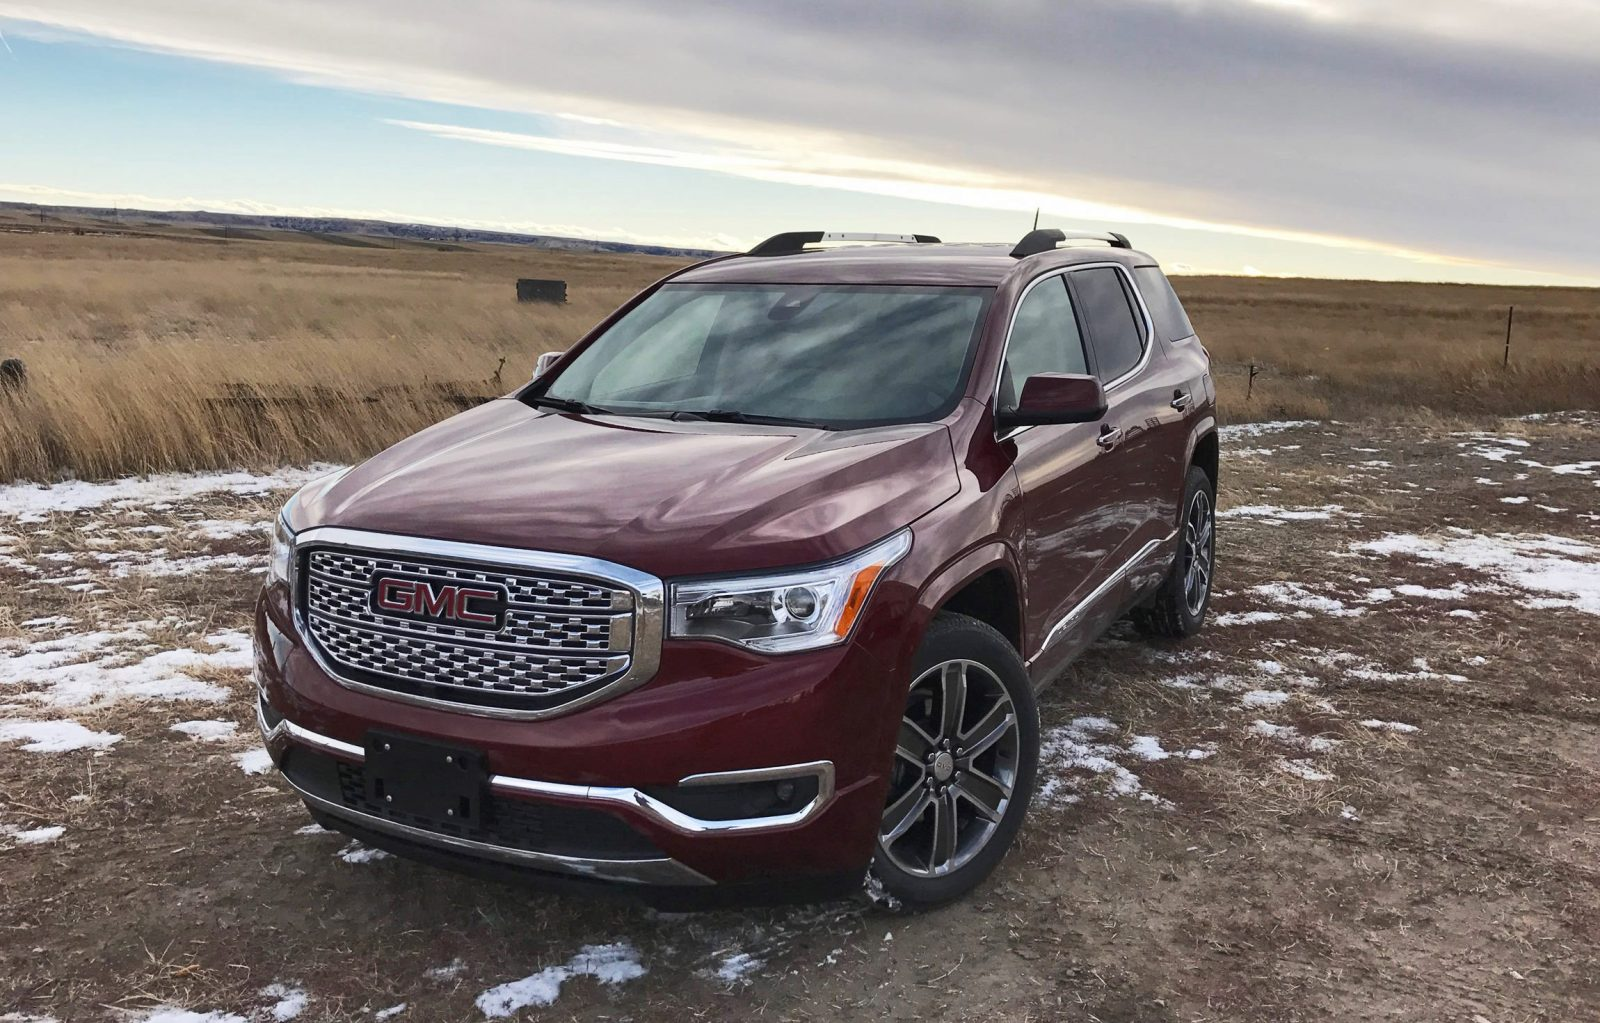 2017 gmc acadia denali road test review by tim esterdahl. Black Bedroom Furniture Sets. Home Design Ideas